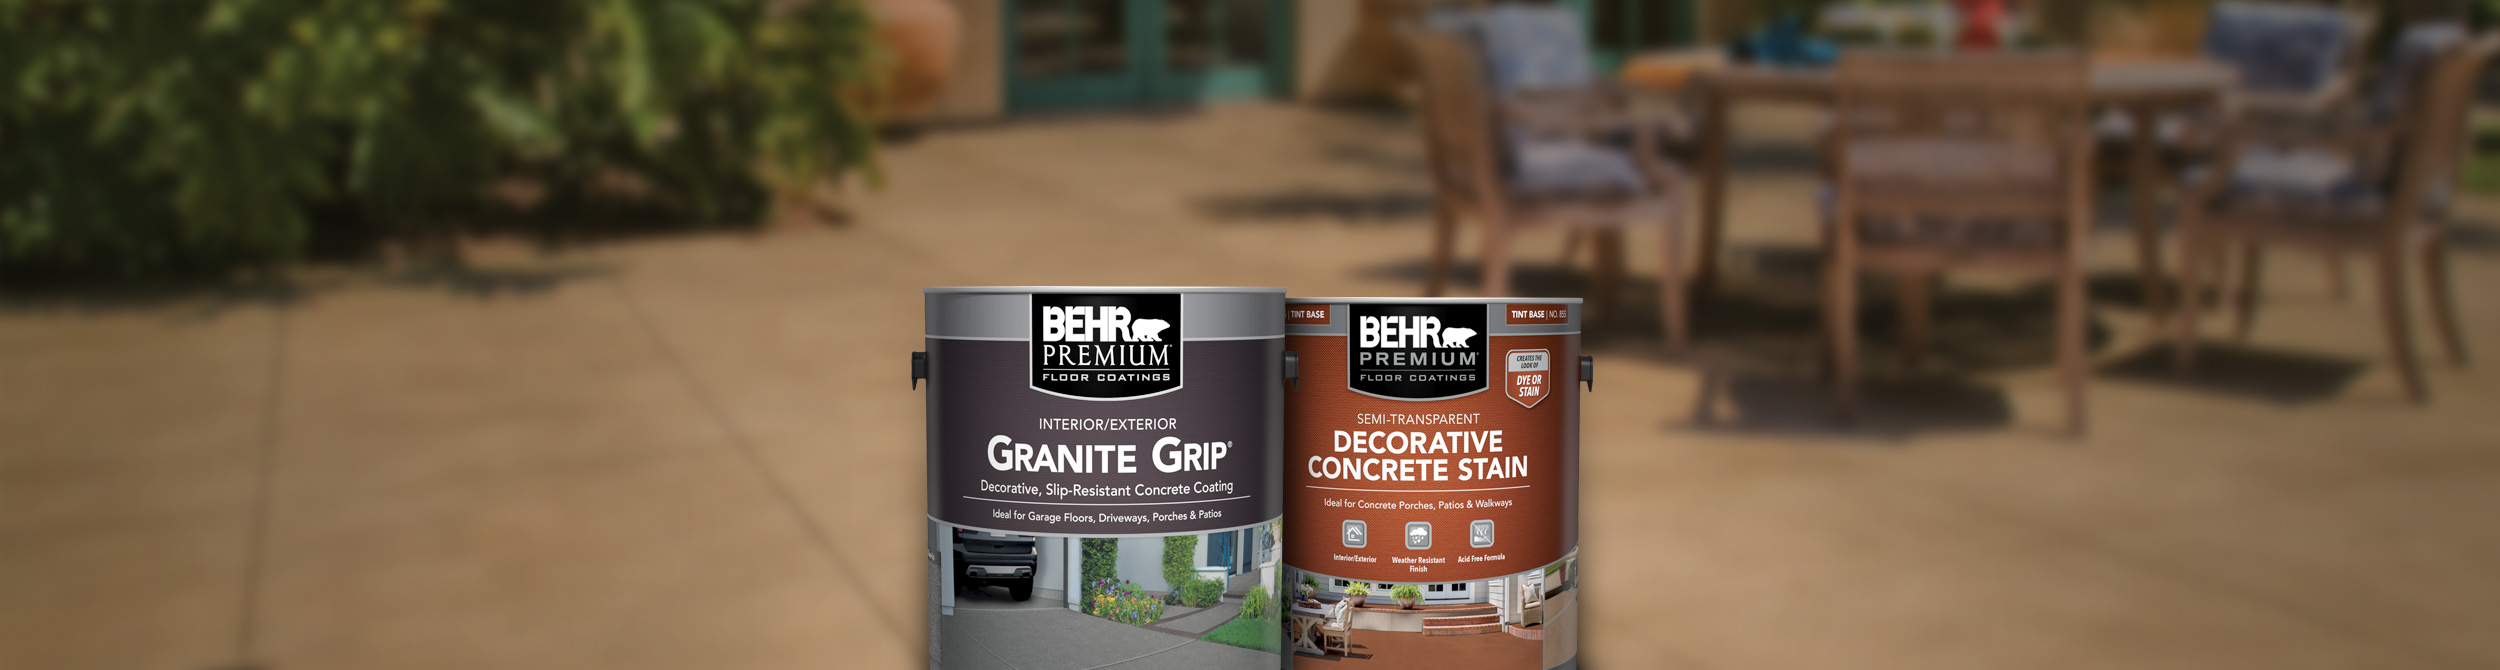 Two cans of Behr concrete products with concrete flooring in the background.